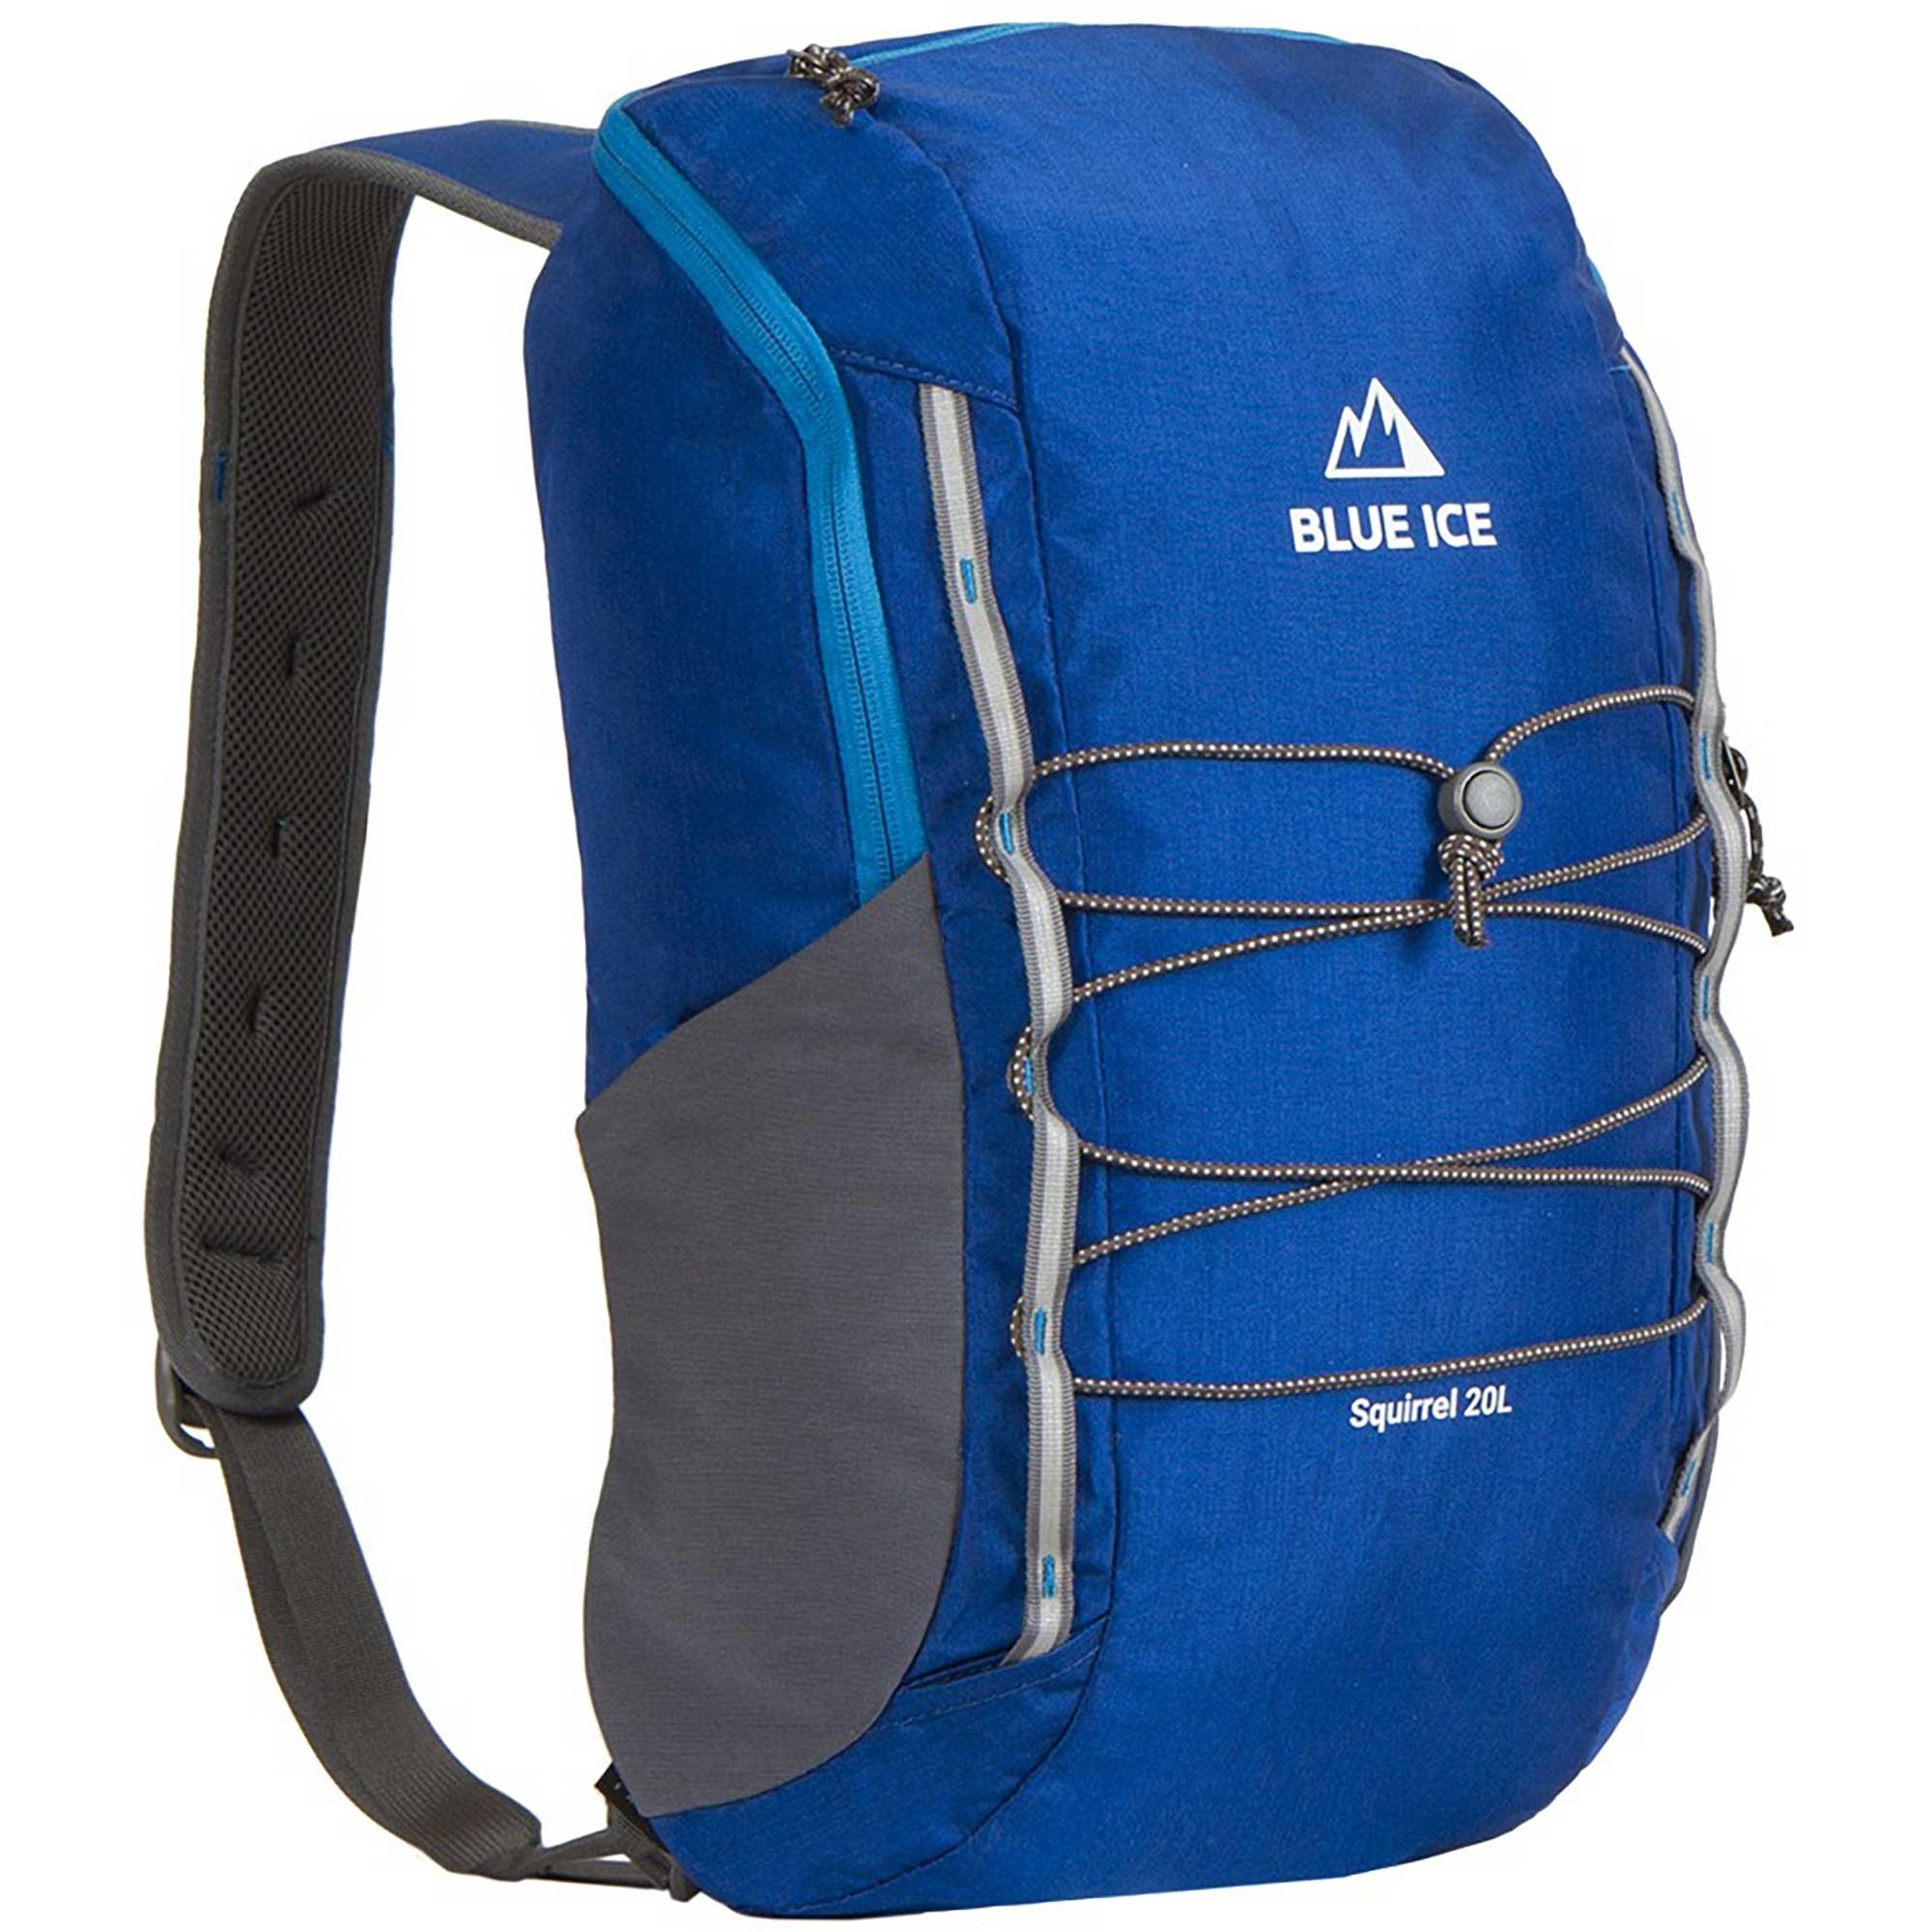 Blue-Ice-Squirrel-20l-Pack-Blue